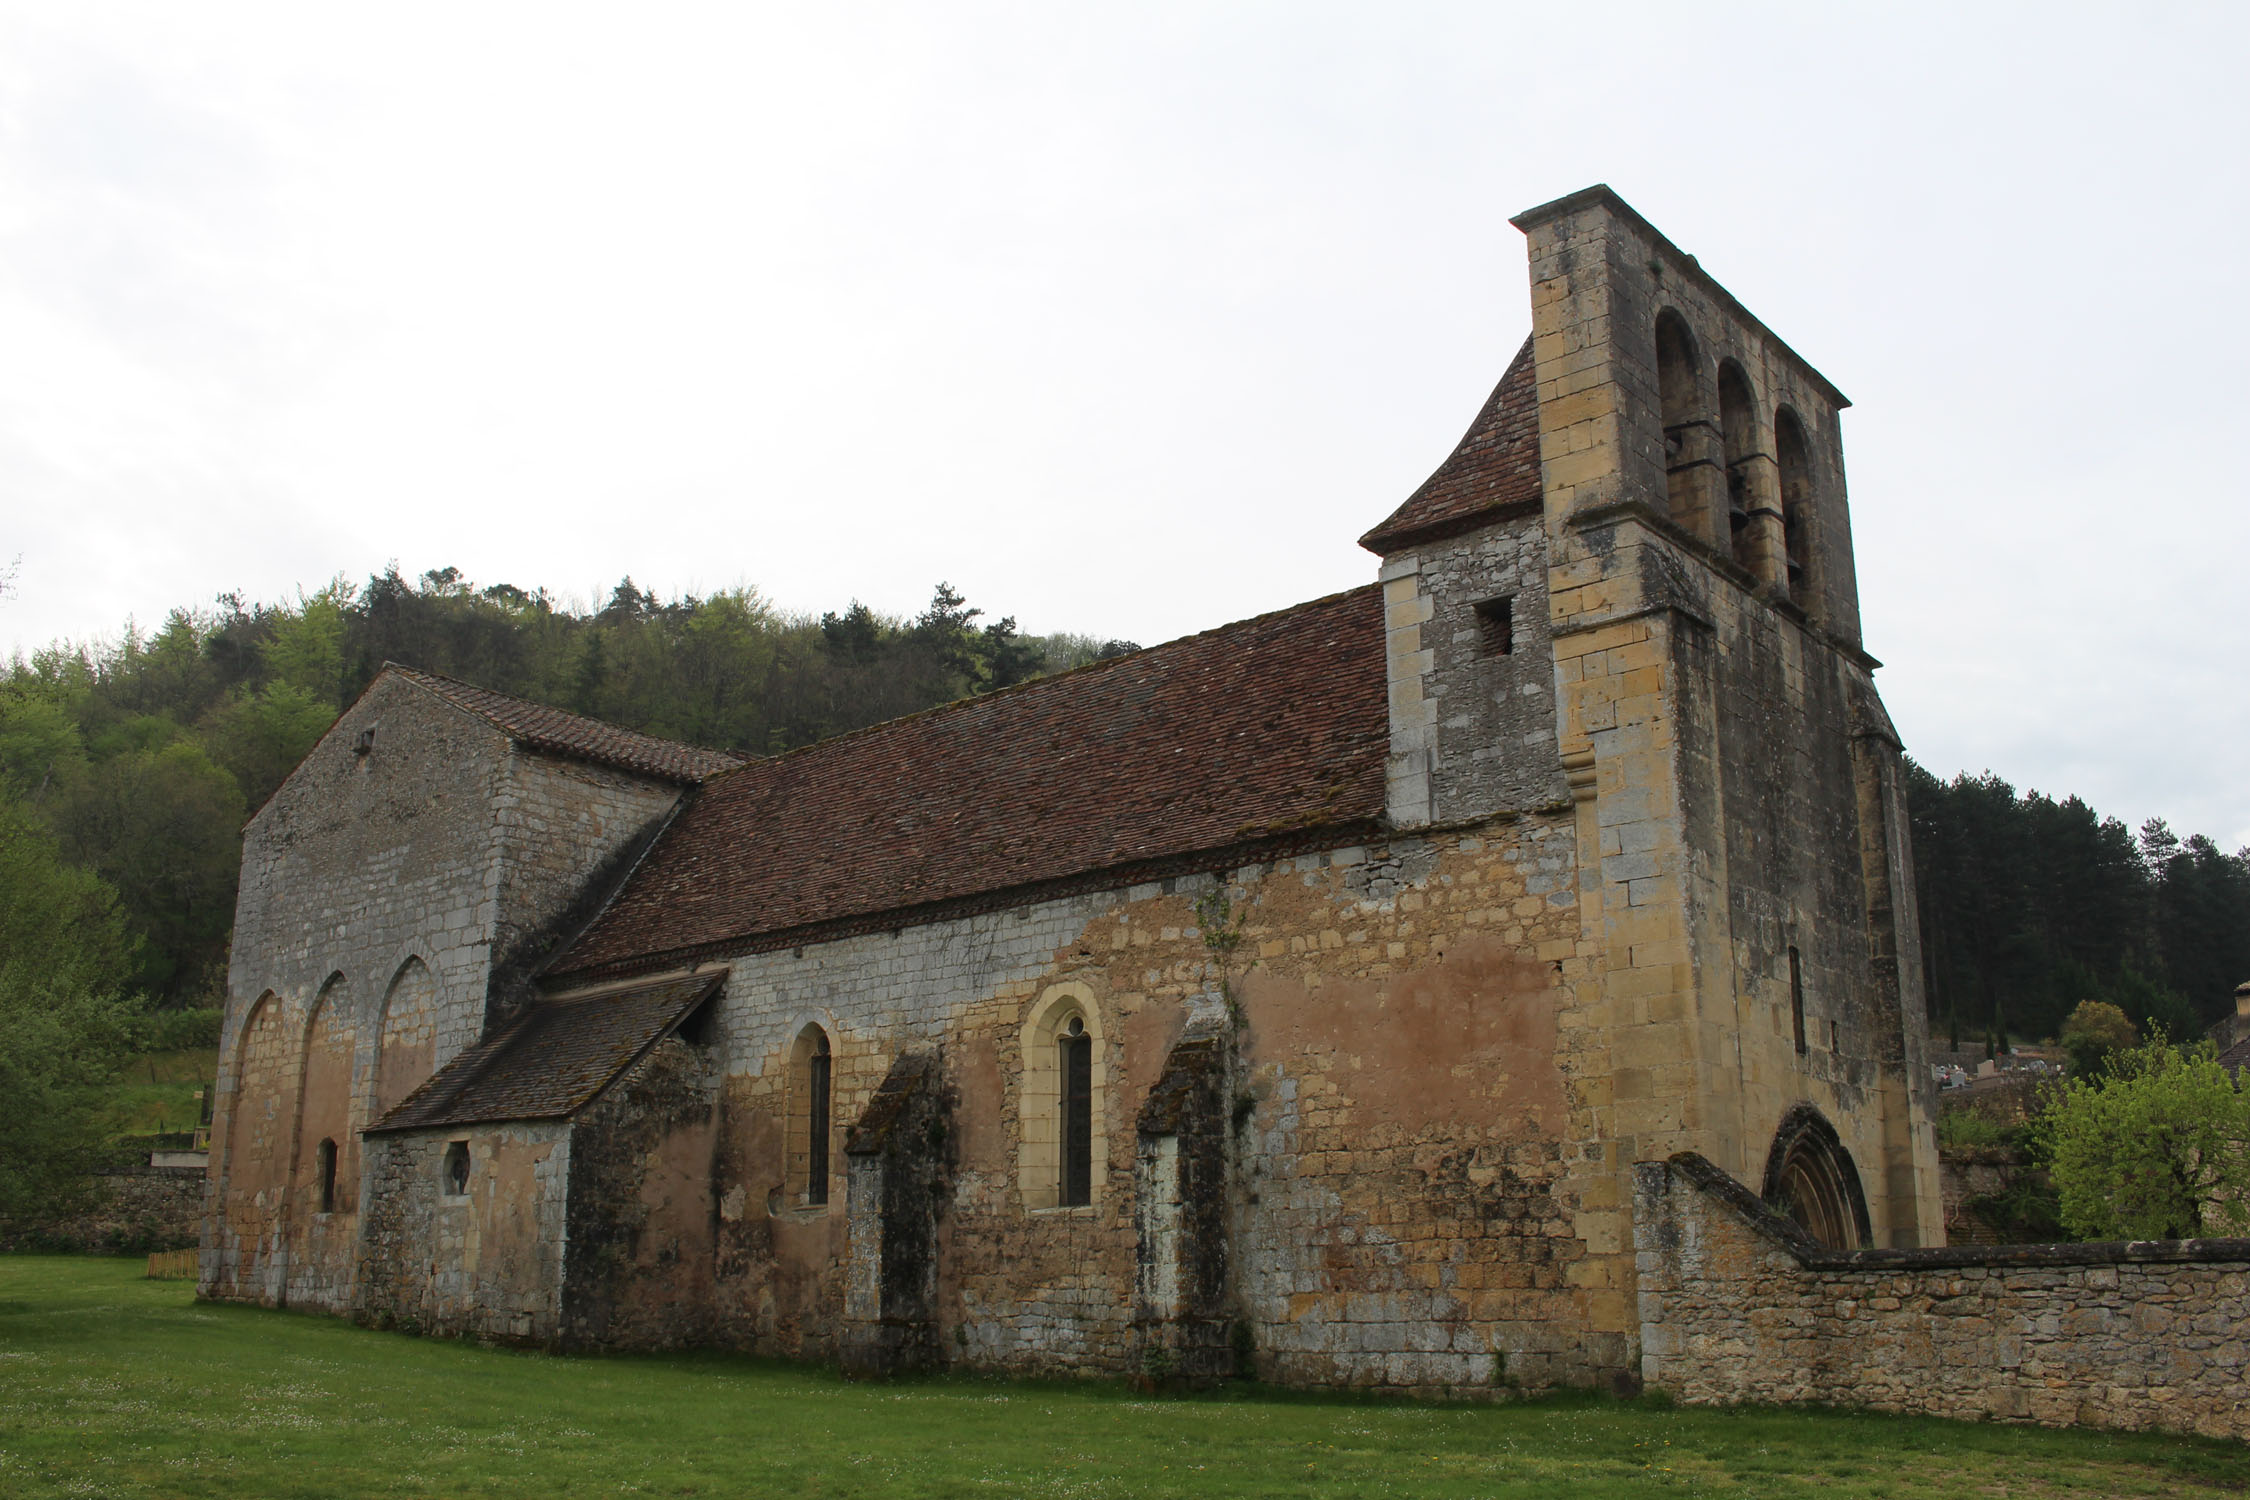 Saint-Jean Baptiste church, Campagne